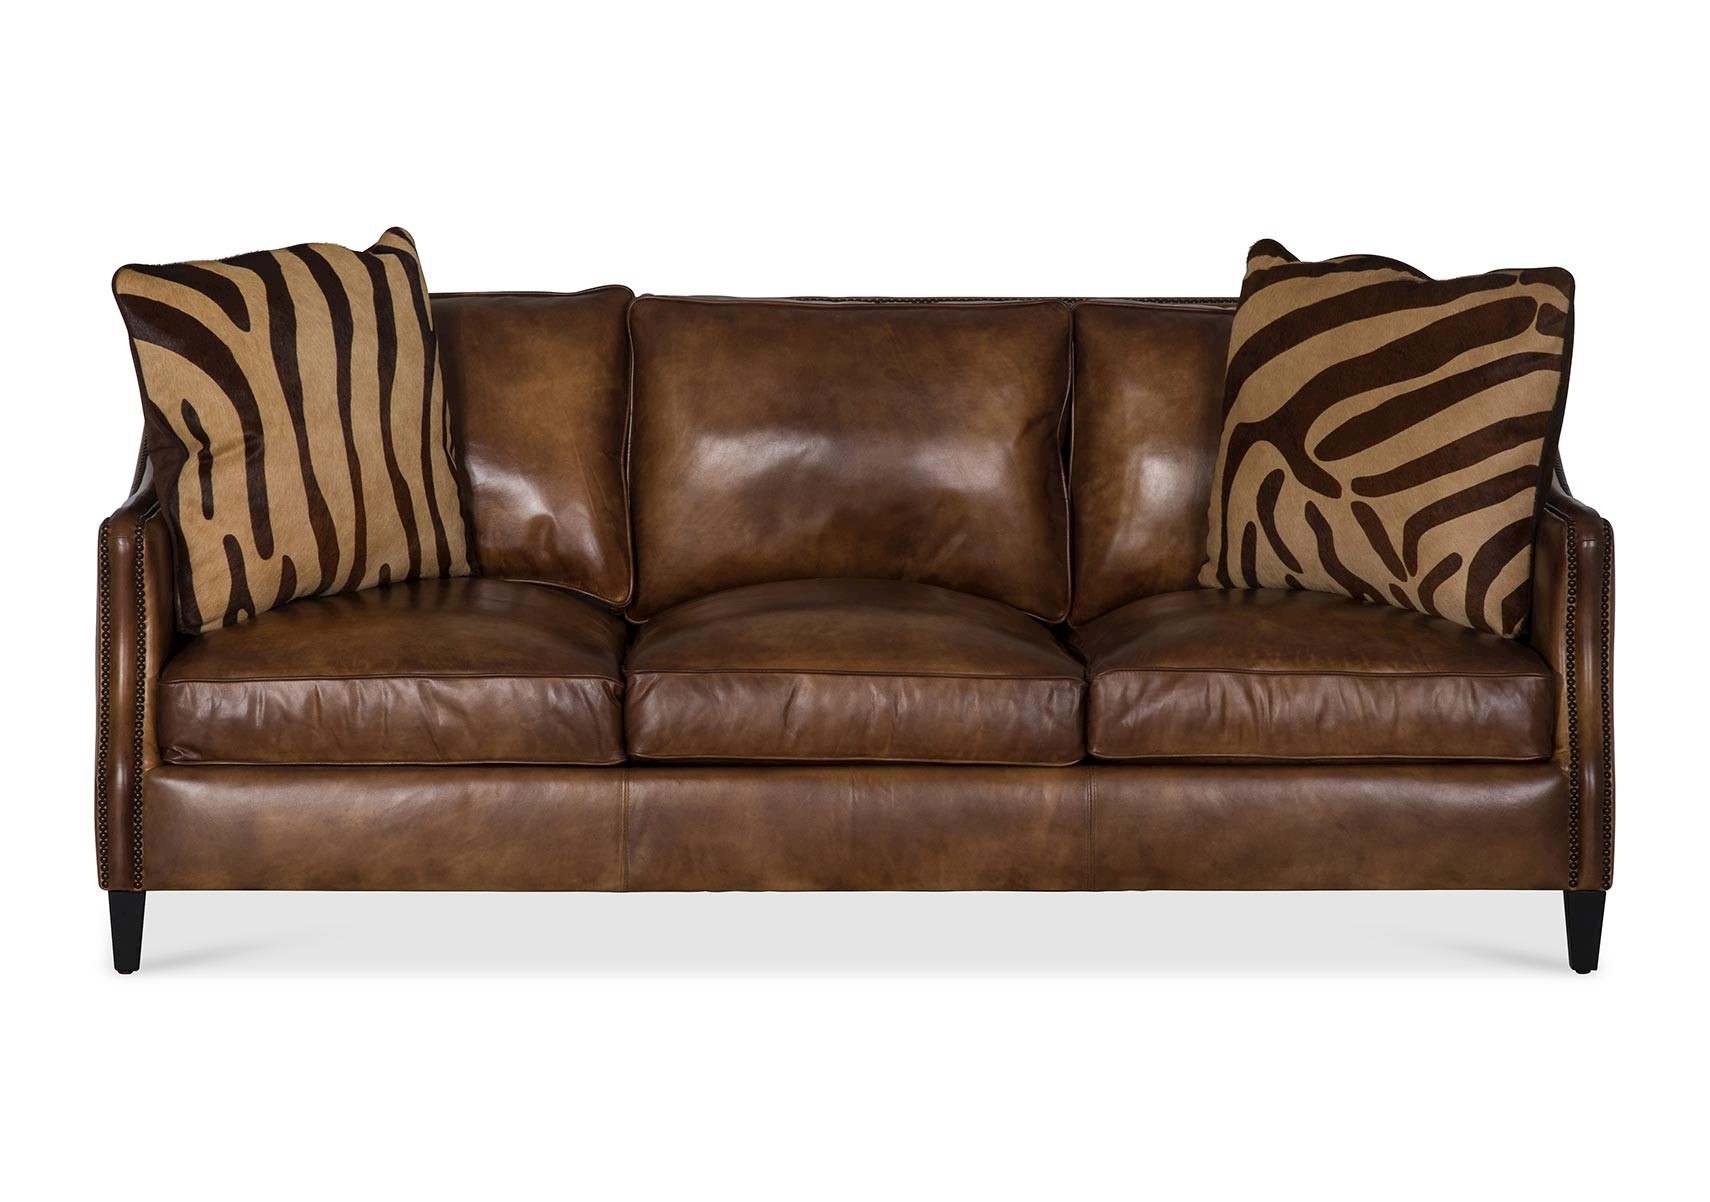 Lacks Hopkins All Leather Sofa